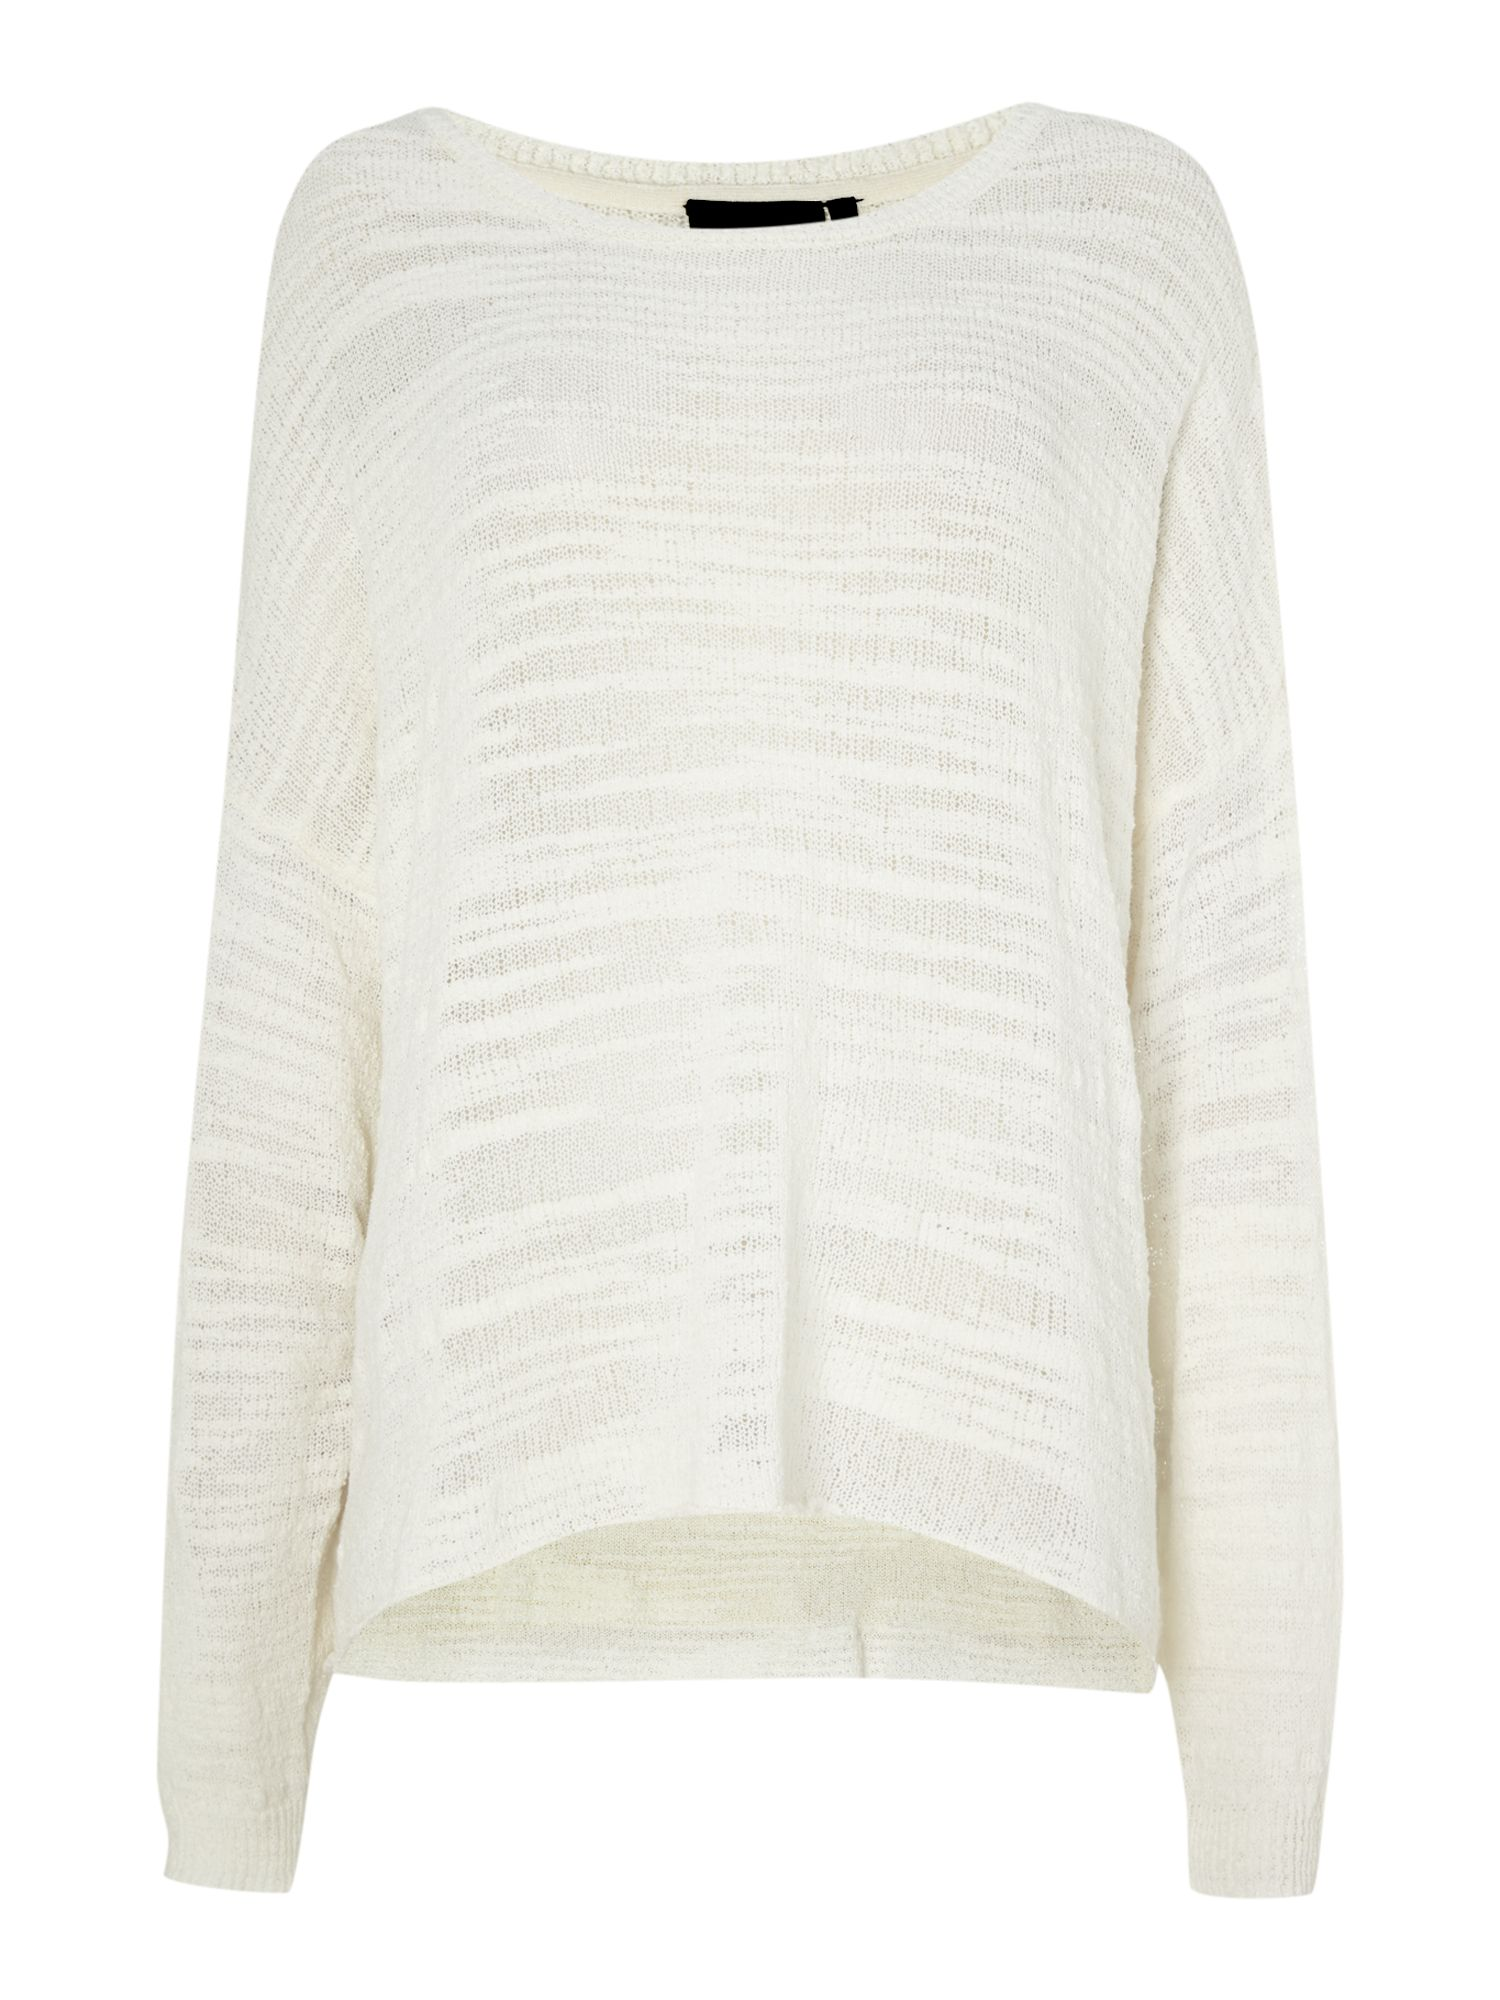 Lightweight textured knit